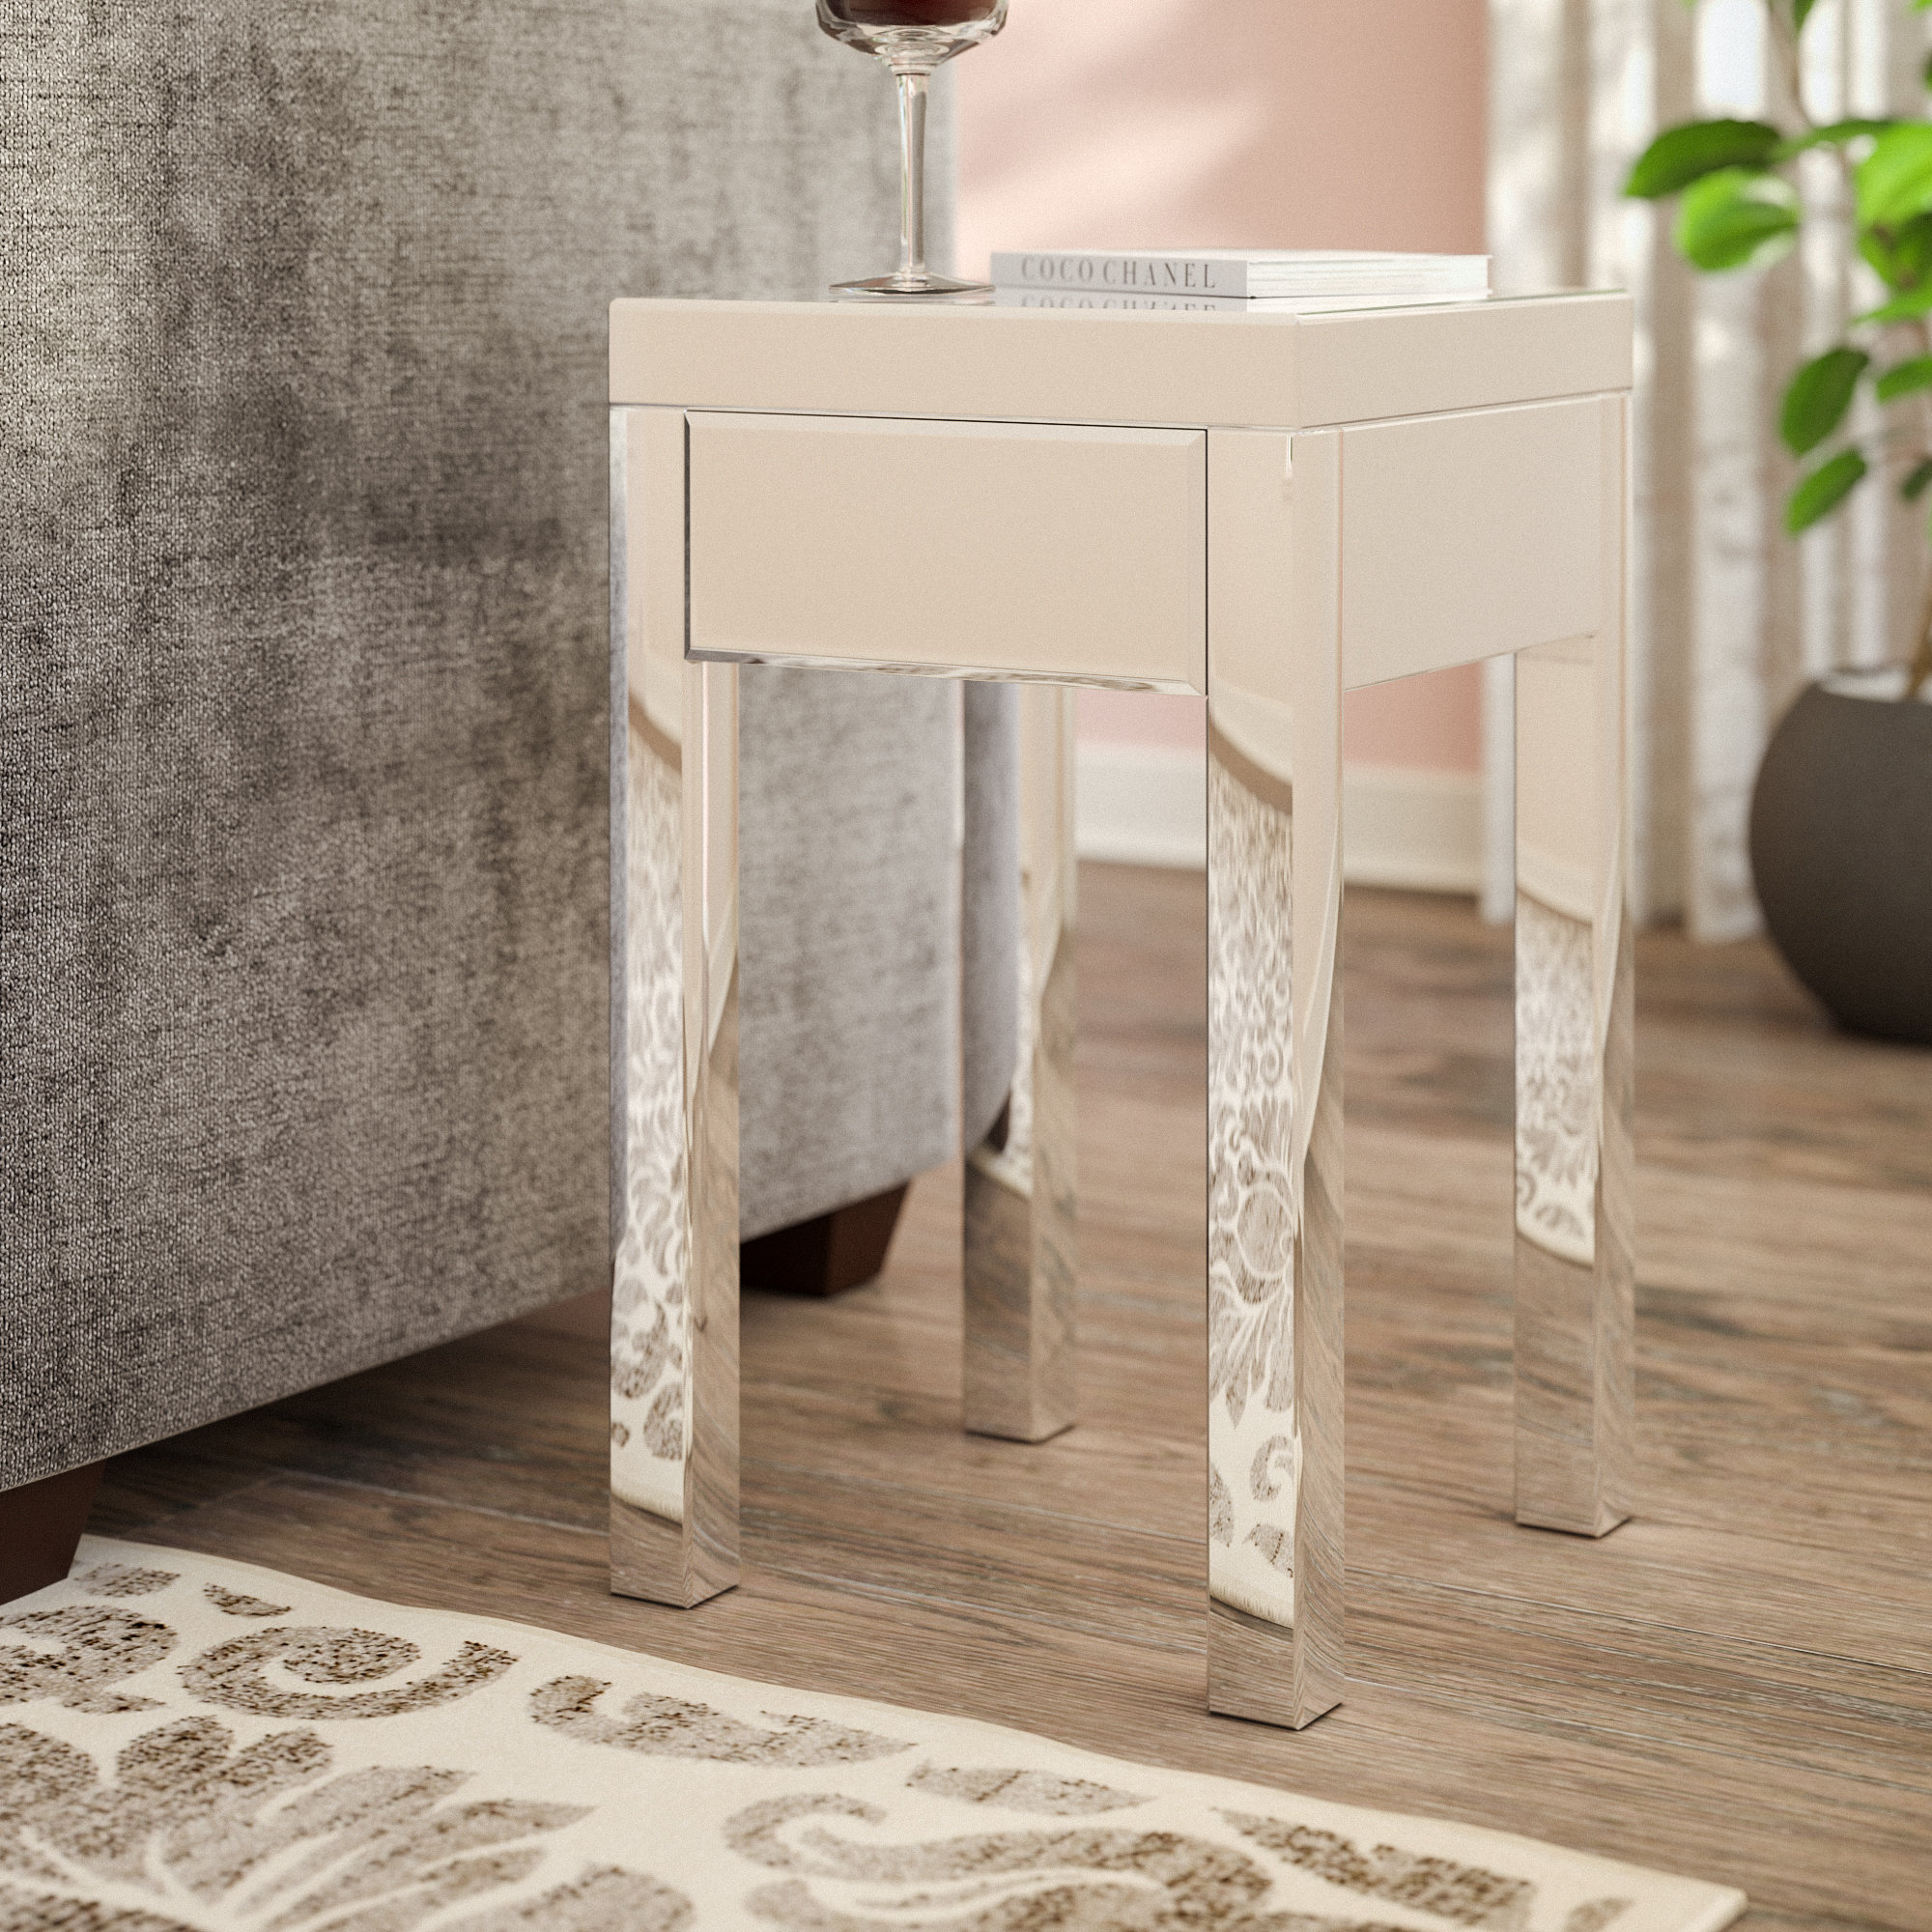 small mirrored accent table keels end with storage mixed material wrought iron patio coffee outdoor garden ikea childrens kitchen silver bedroom lamps trestle bench legs uttermost